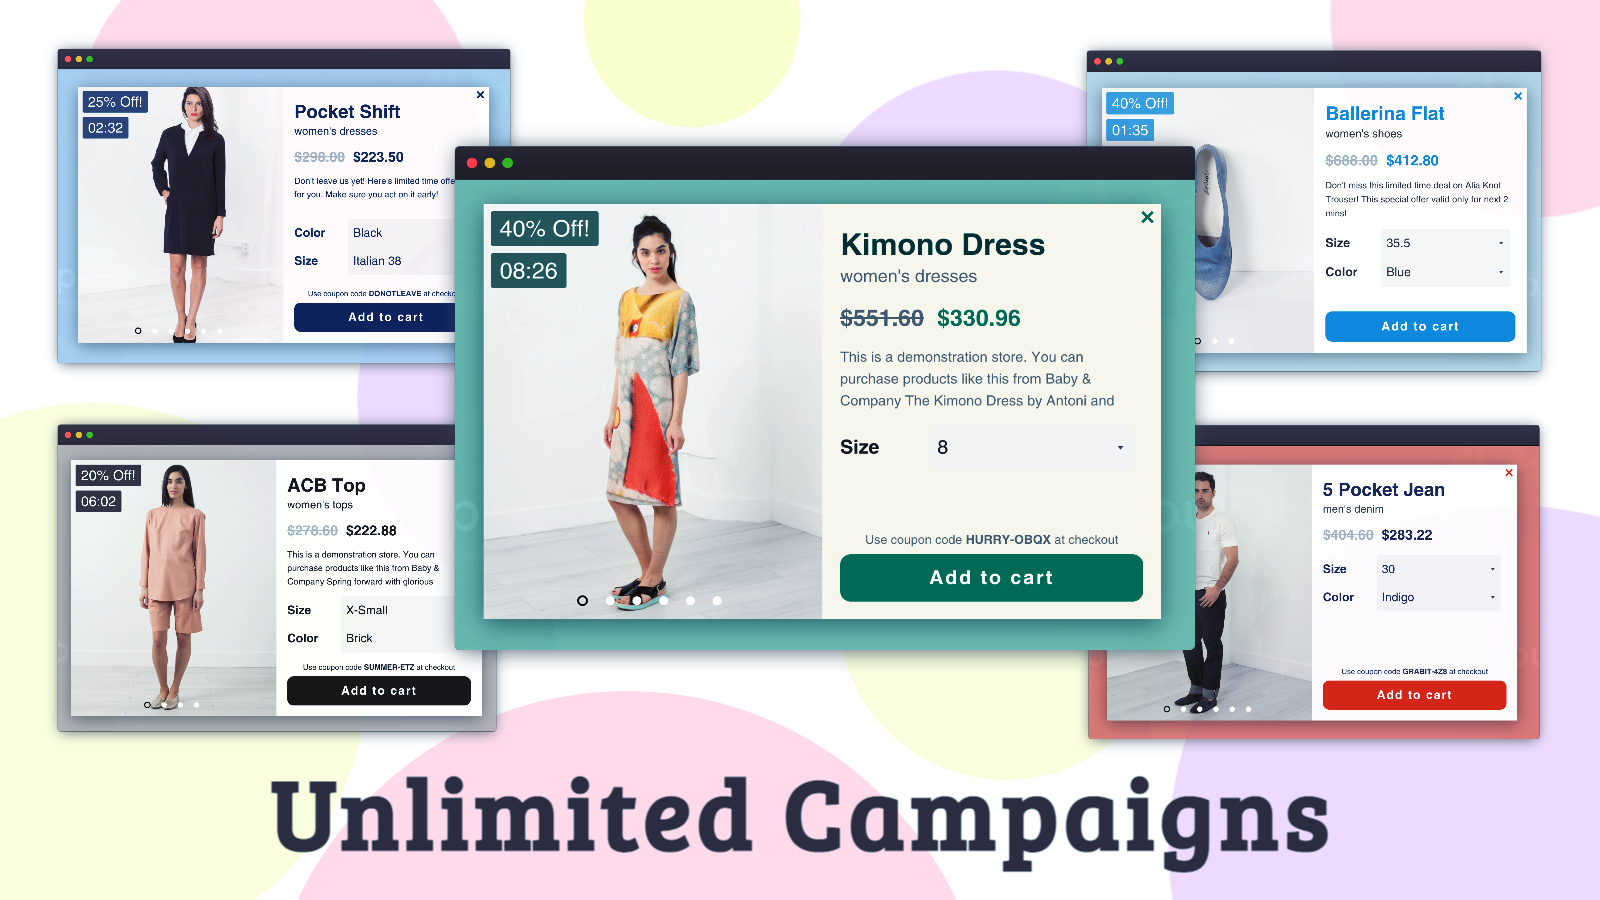 Unlimited Campaigns